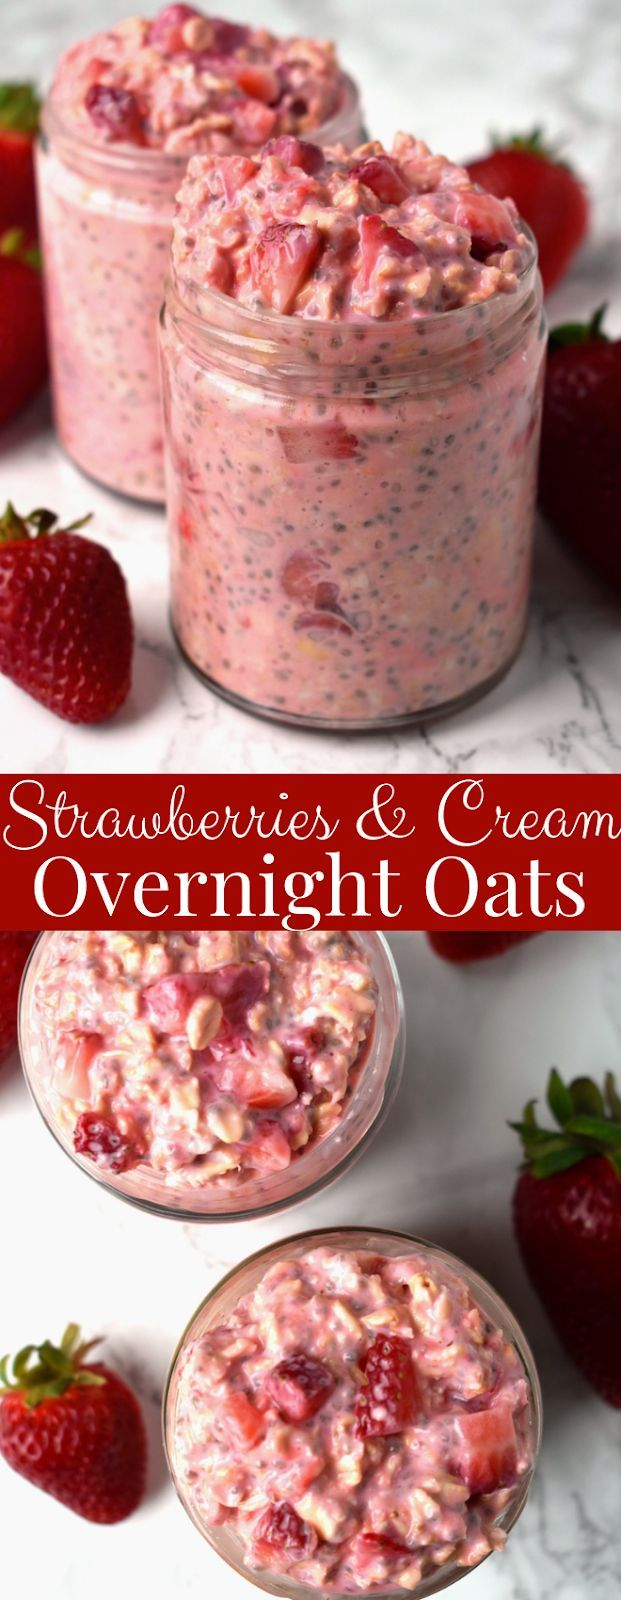 Photo of Strawberries and Cream Overnight Oats